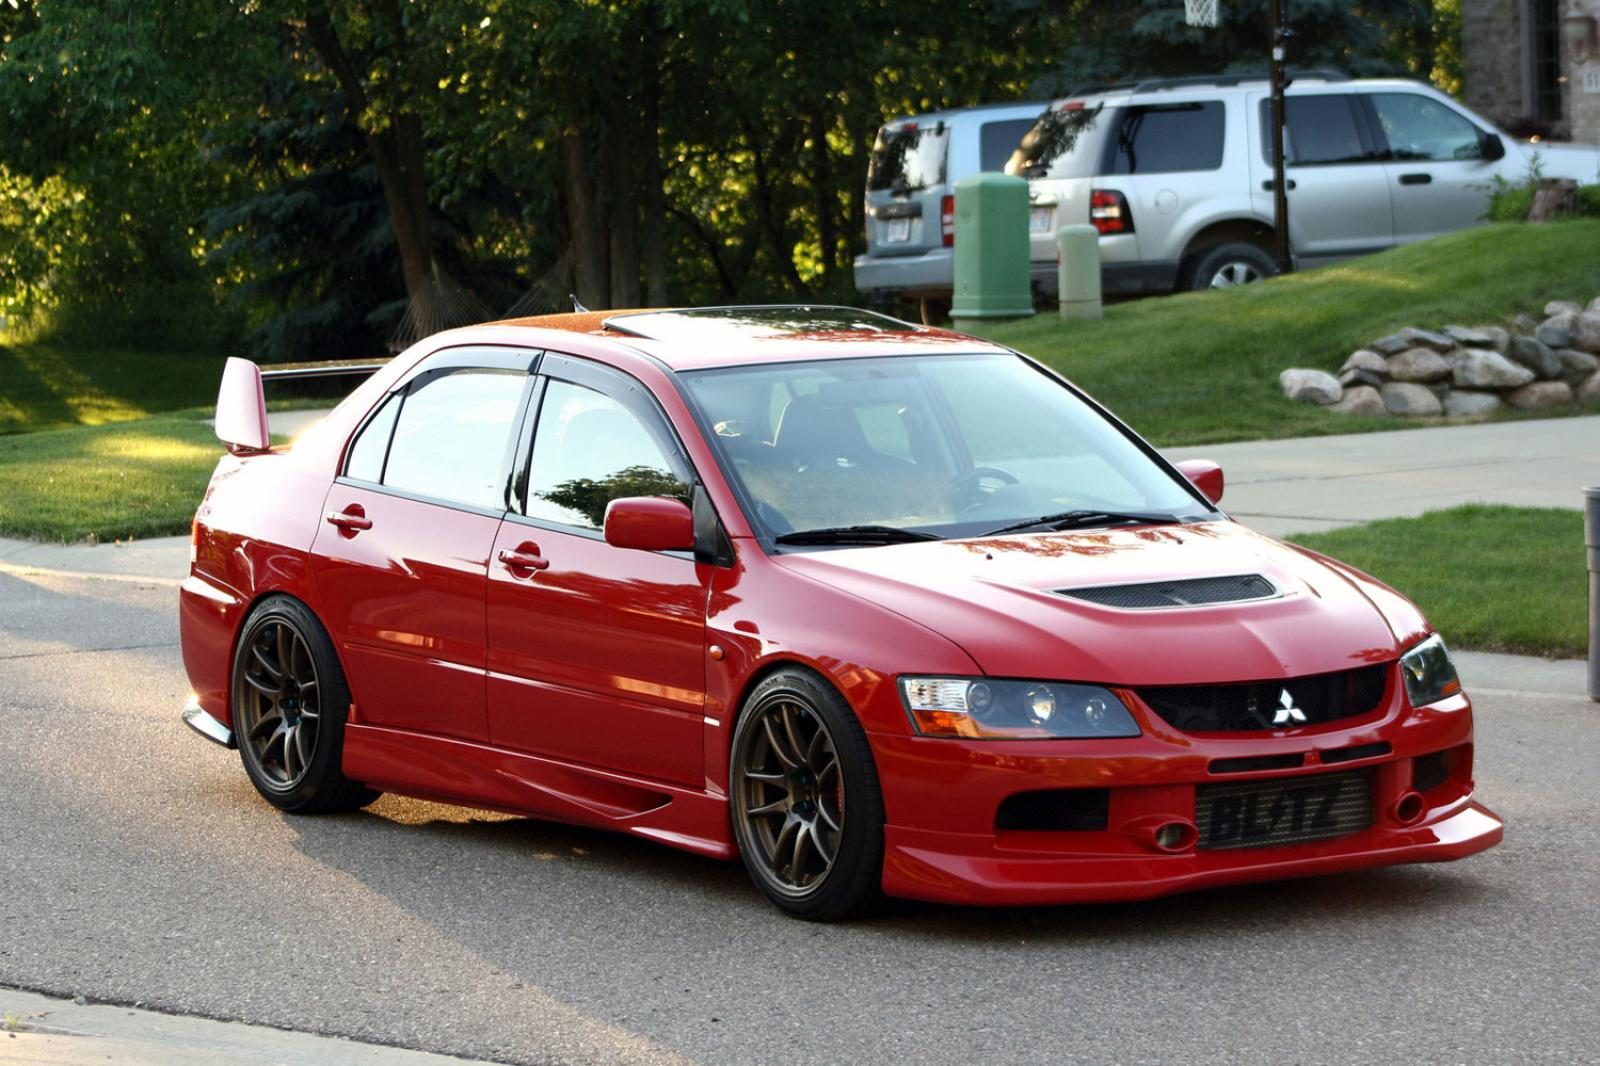 2003 mitsubishi lancer evolution 1 800 1024 1280 1600 origin